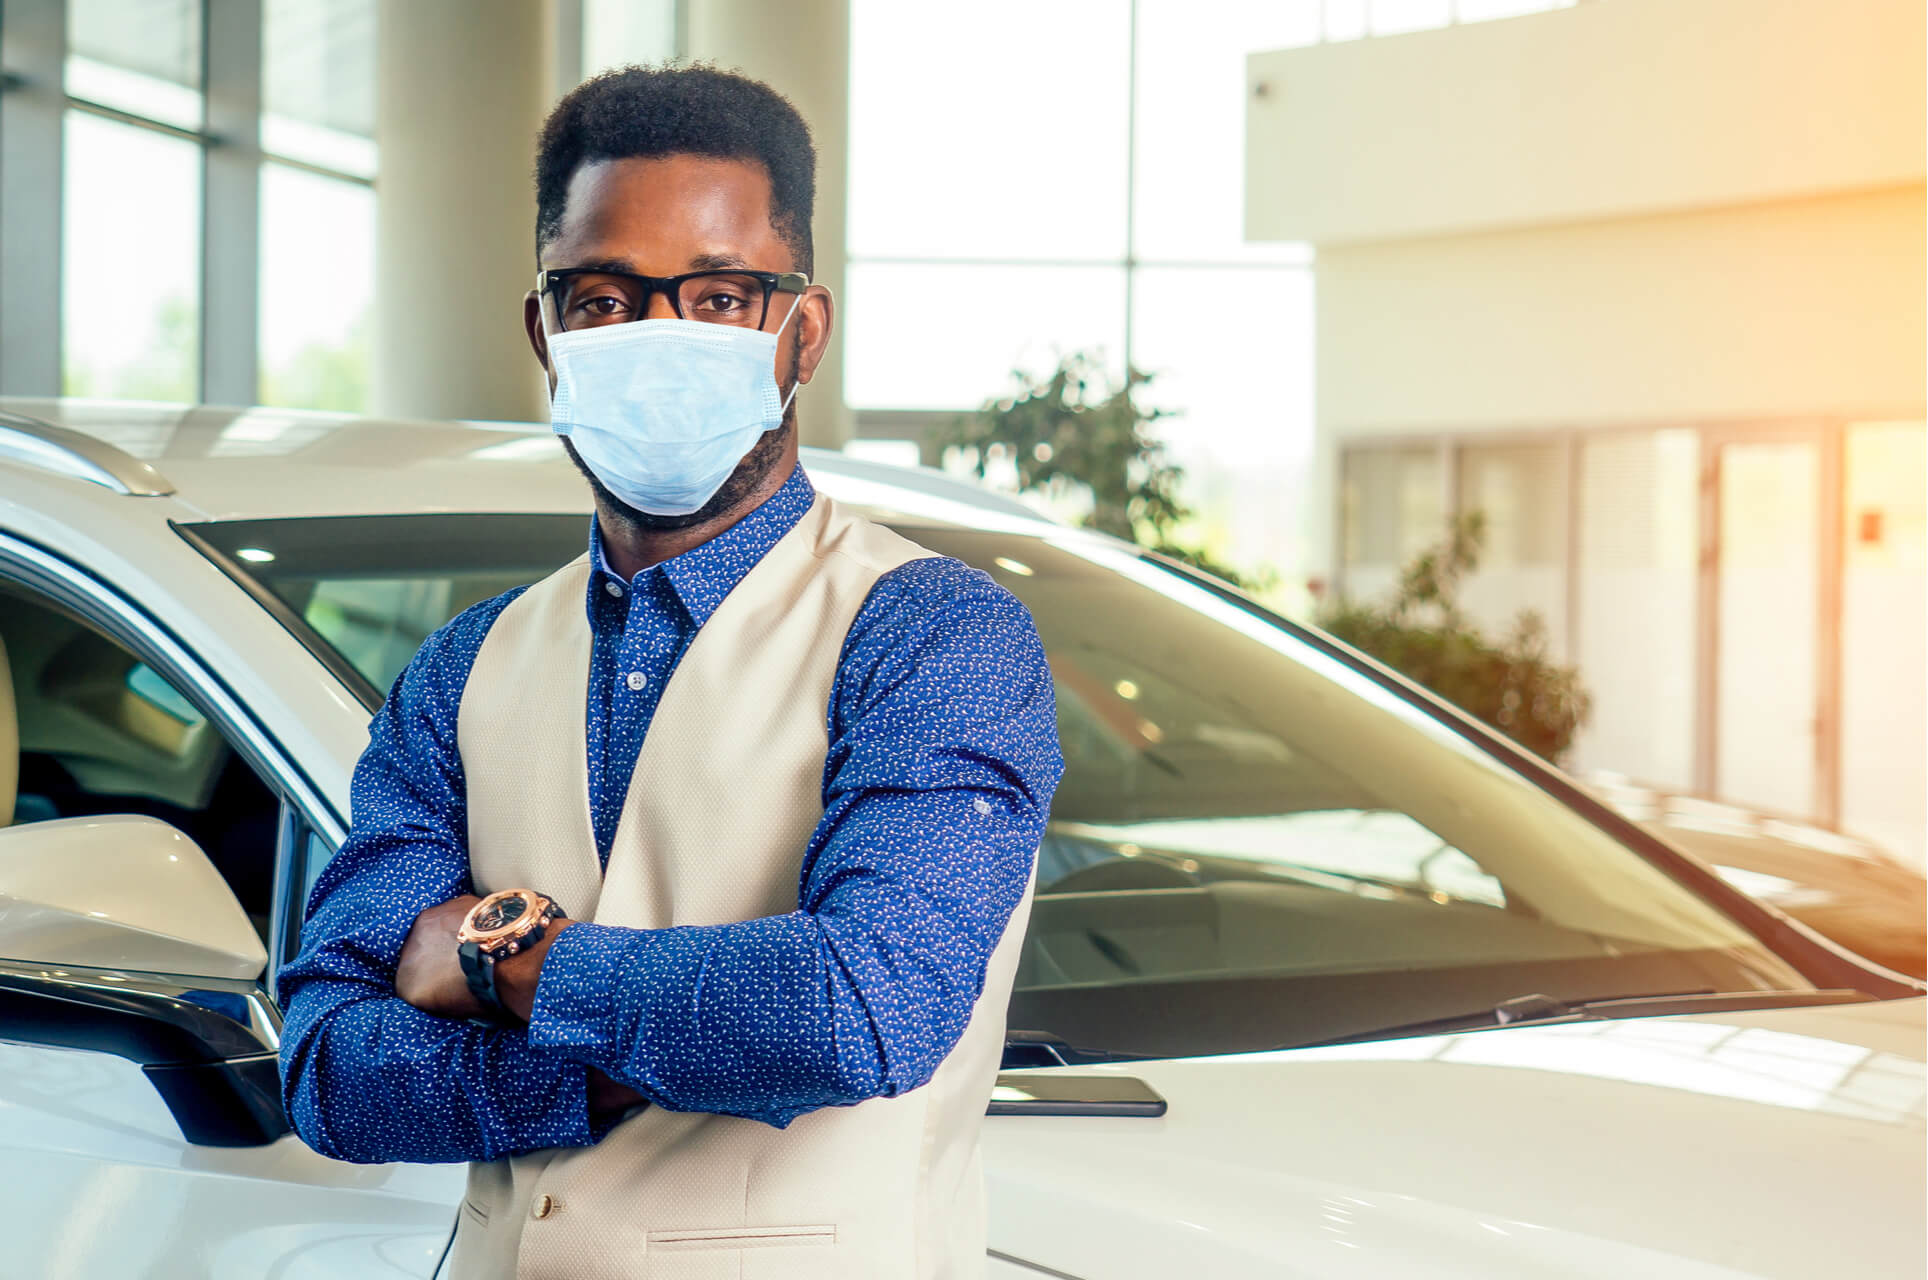 The Safest Way to Buy a Car in the UK During the Pandemic